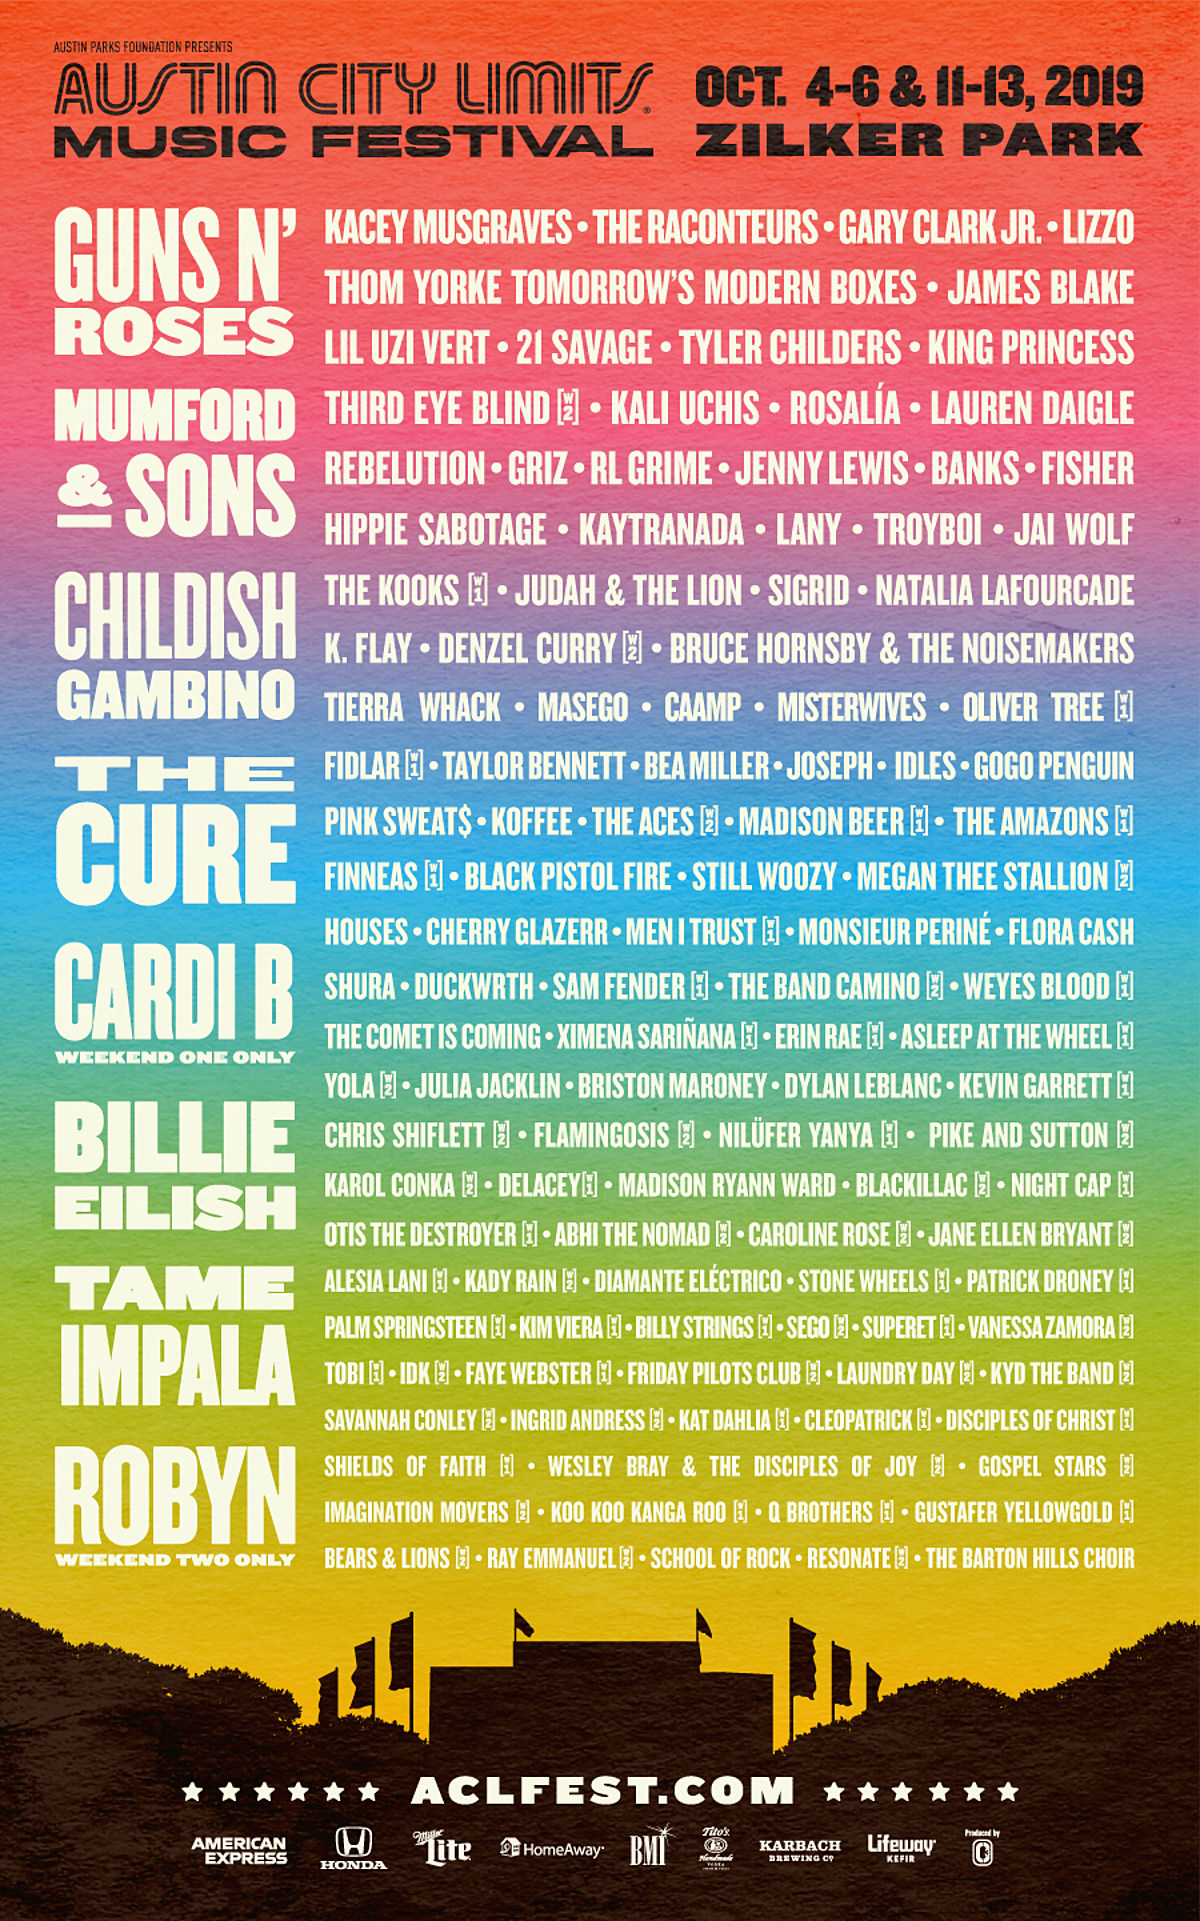 ACL Fest announces 2019 schedule (Guns N' Roses vs Tame Impala)